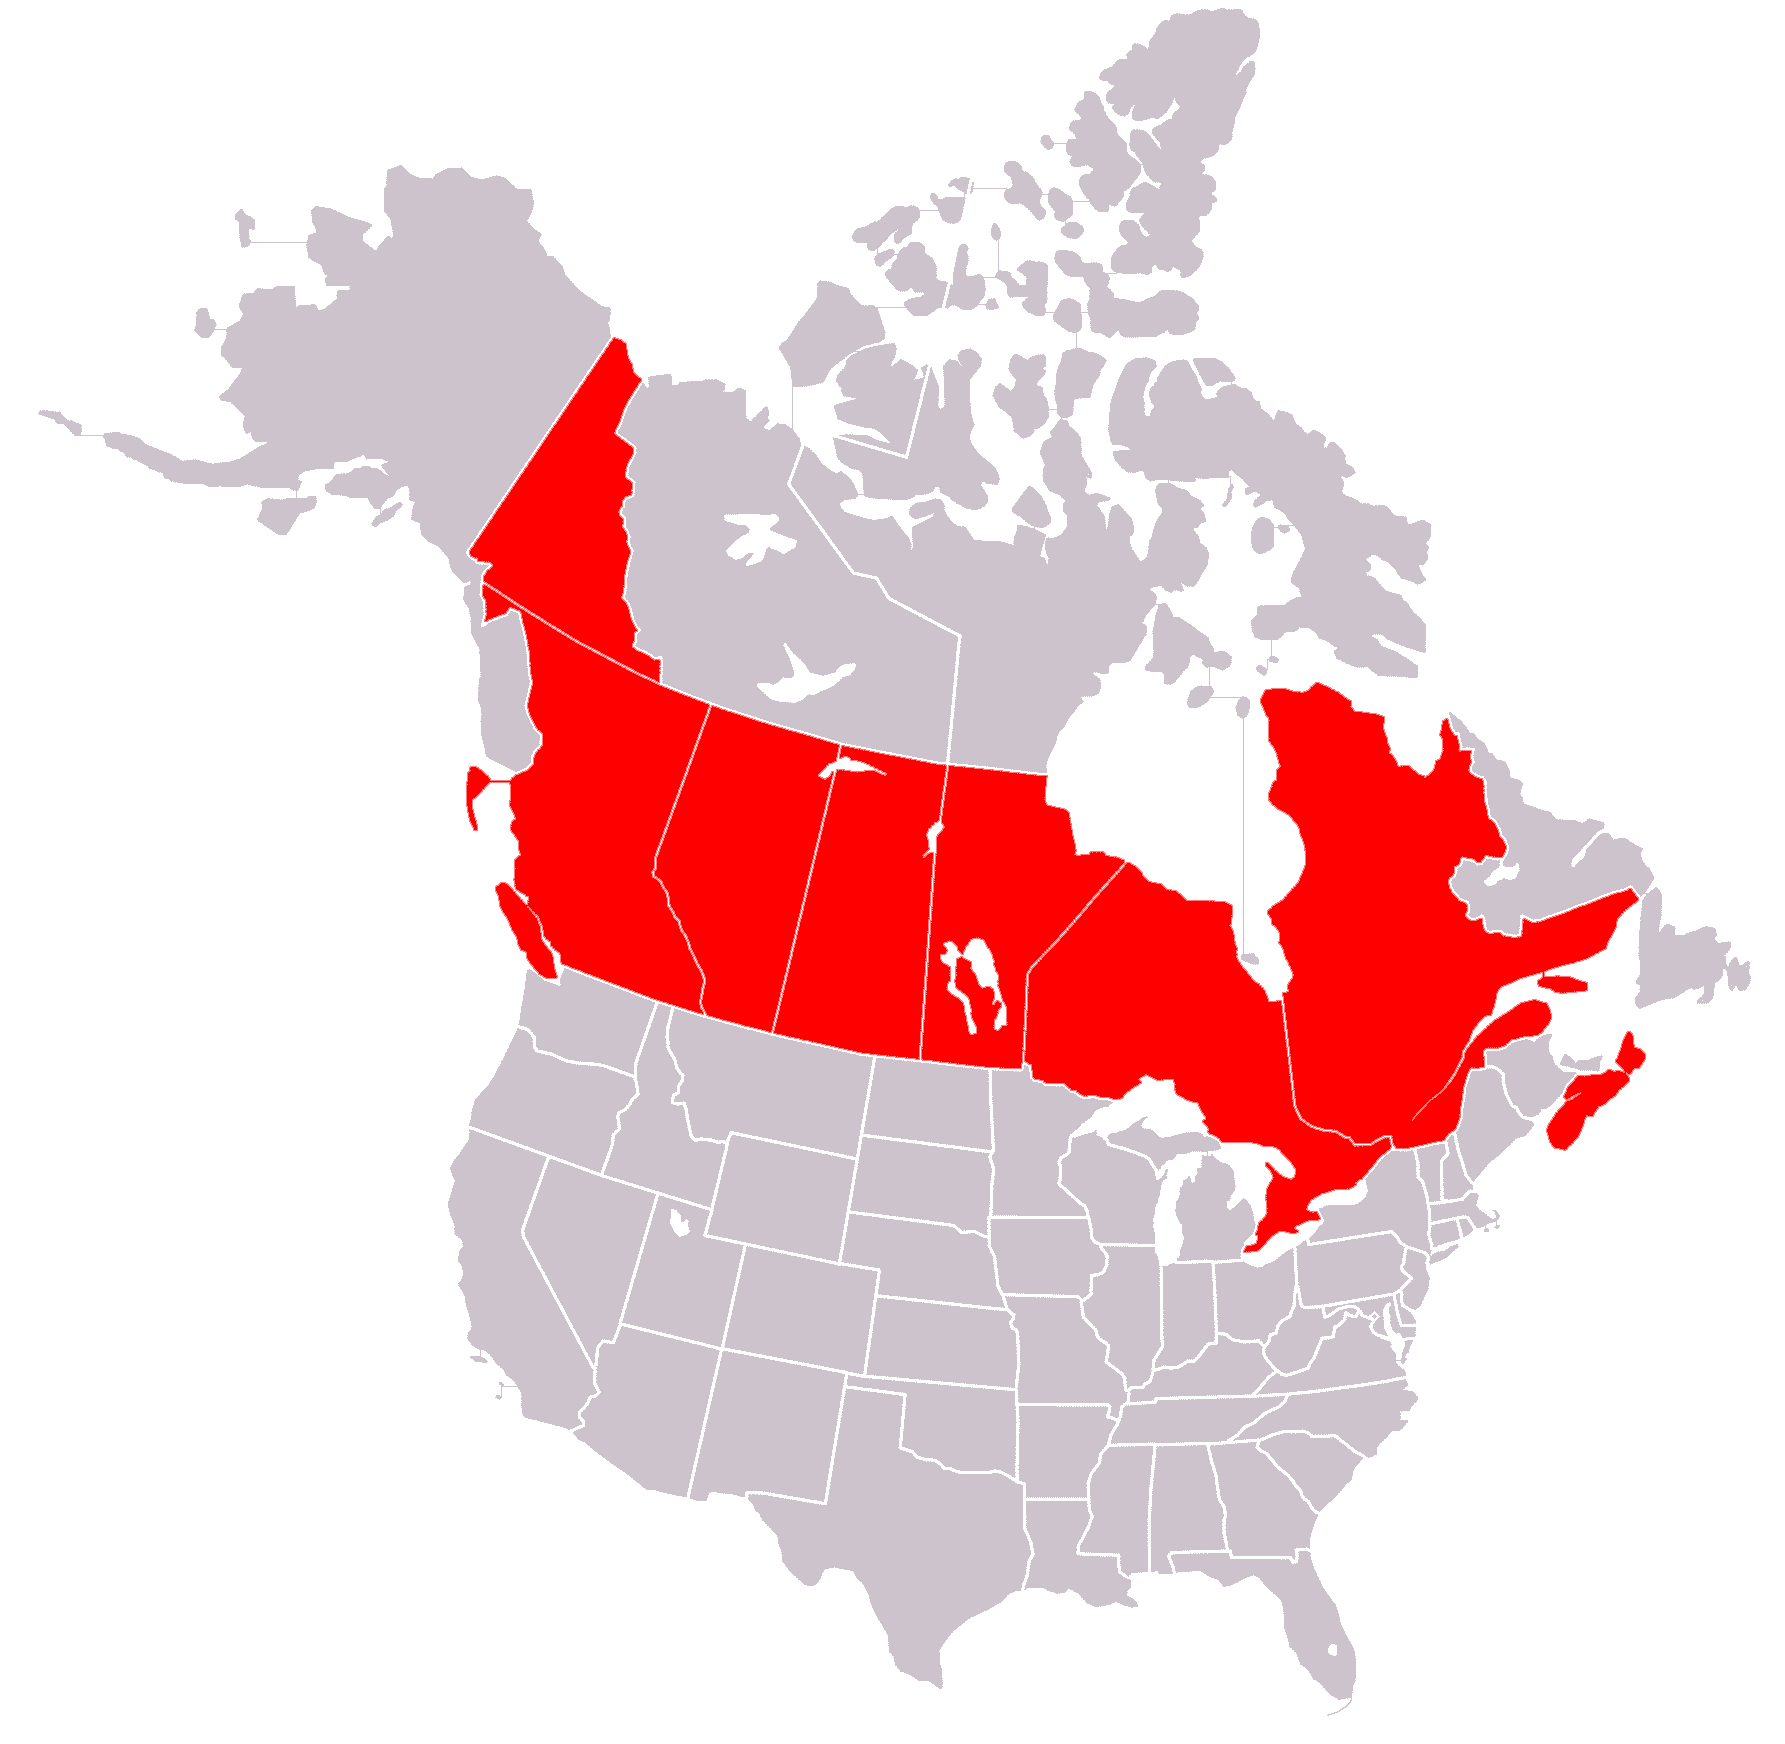 FileBlankMapUSAstatesCanadaprovinces Highlighting OCA - Map of canada provinces and us states